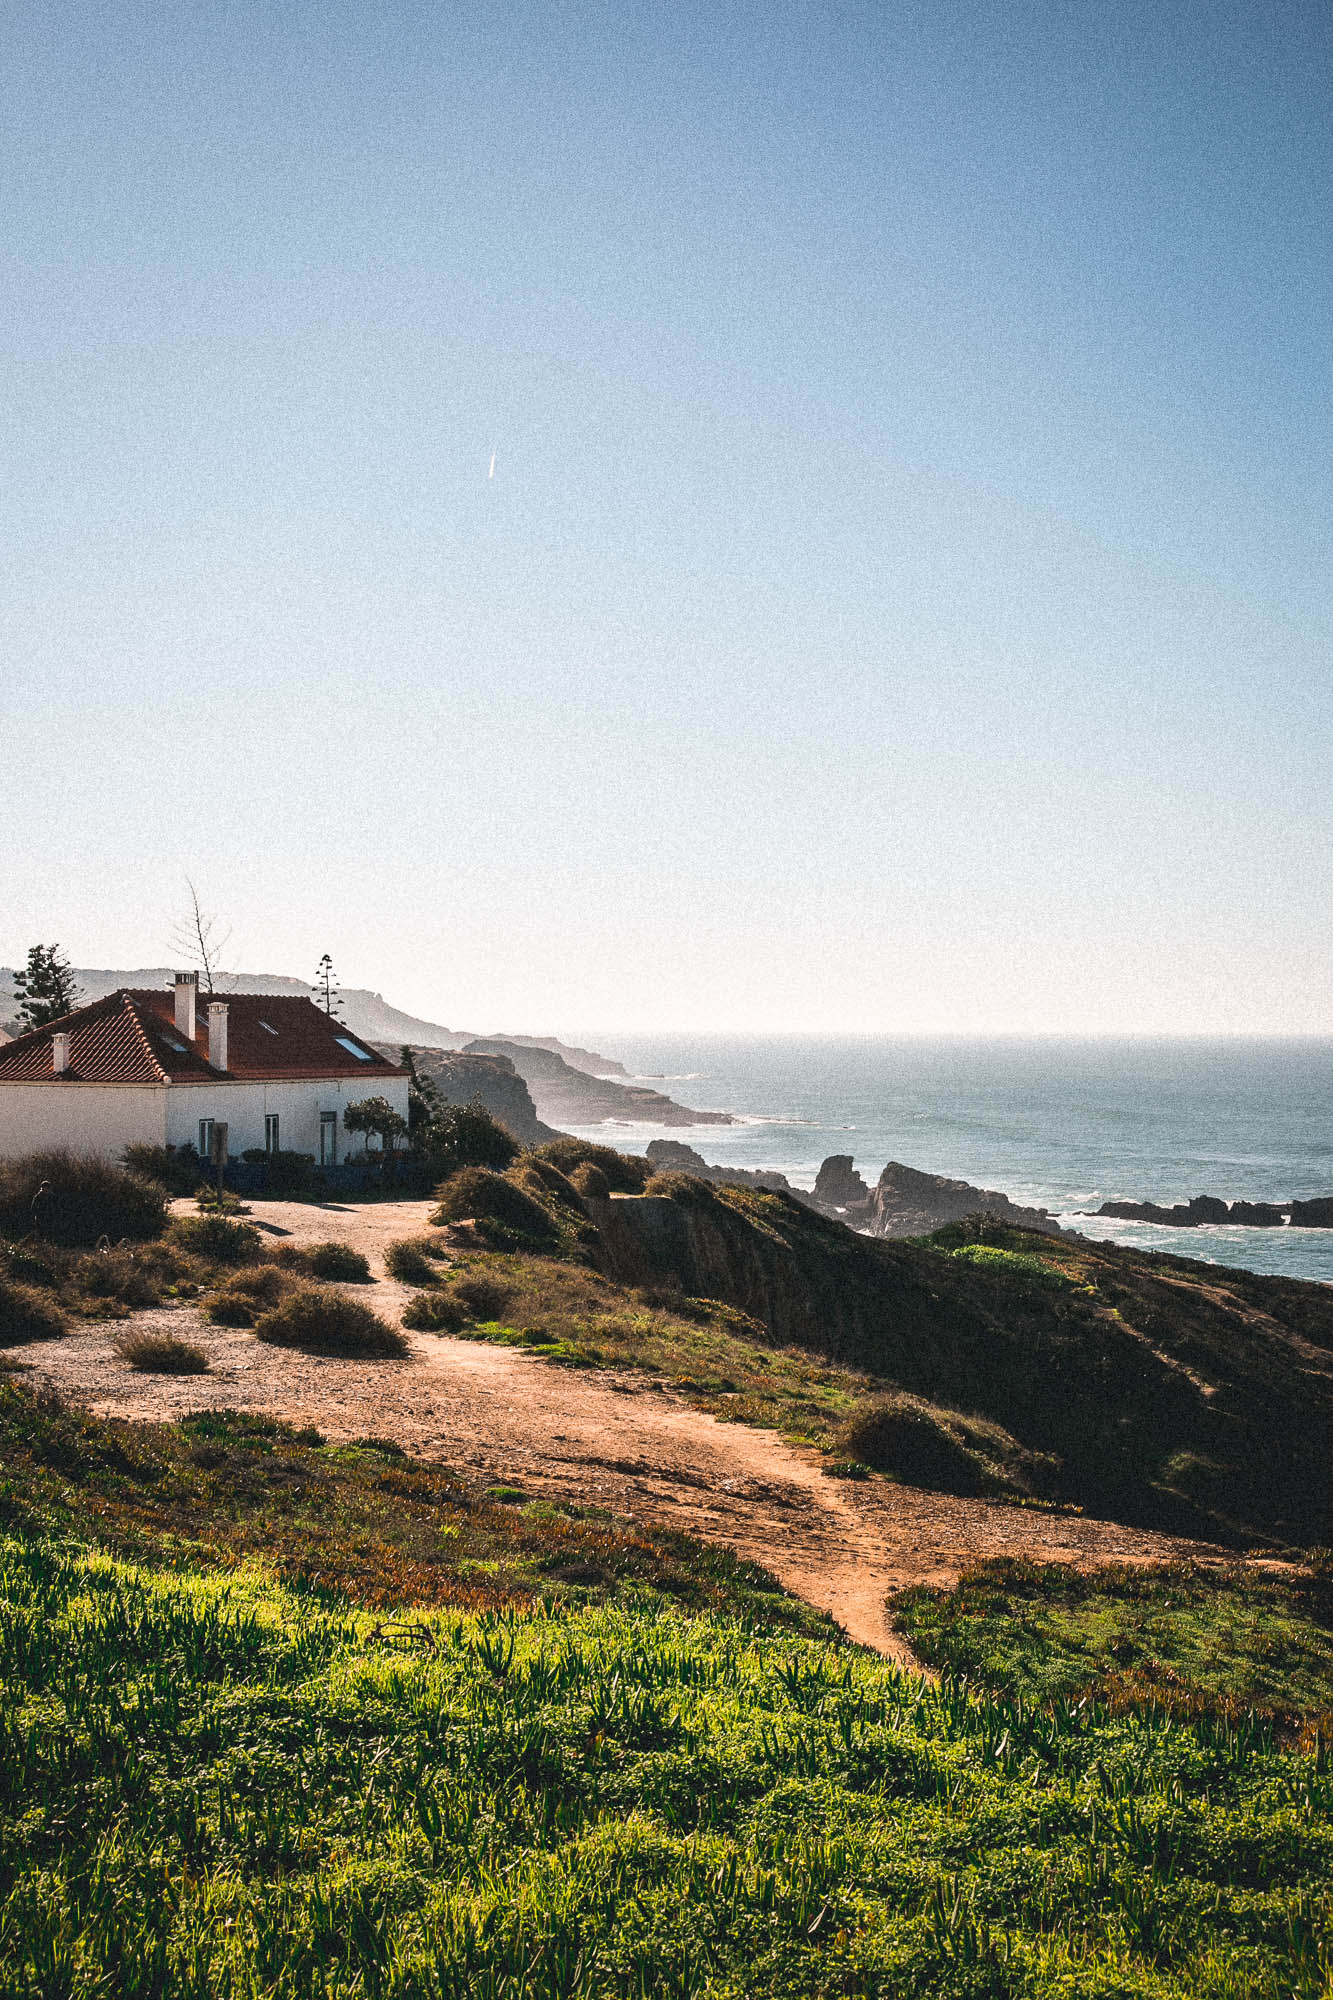 Alentejo, Portugal | On Posting Responsibly - Slow Posting - The Adagio Blog by Thais FK